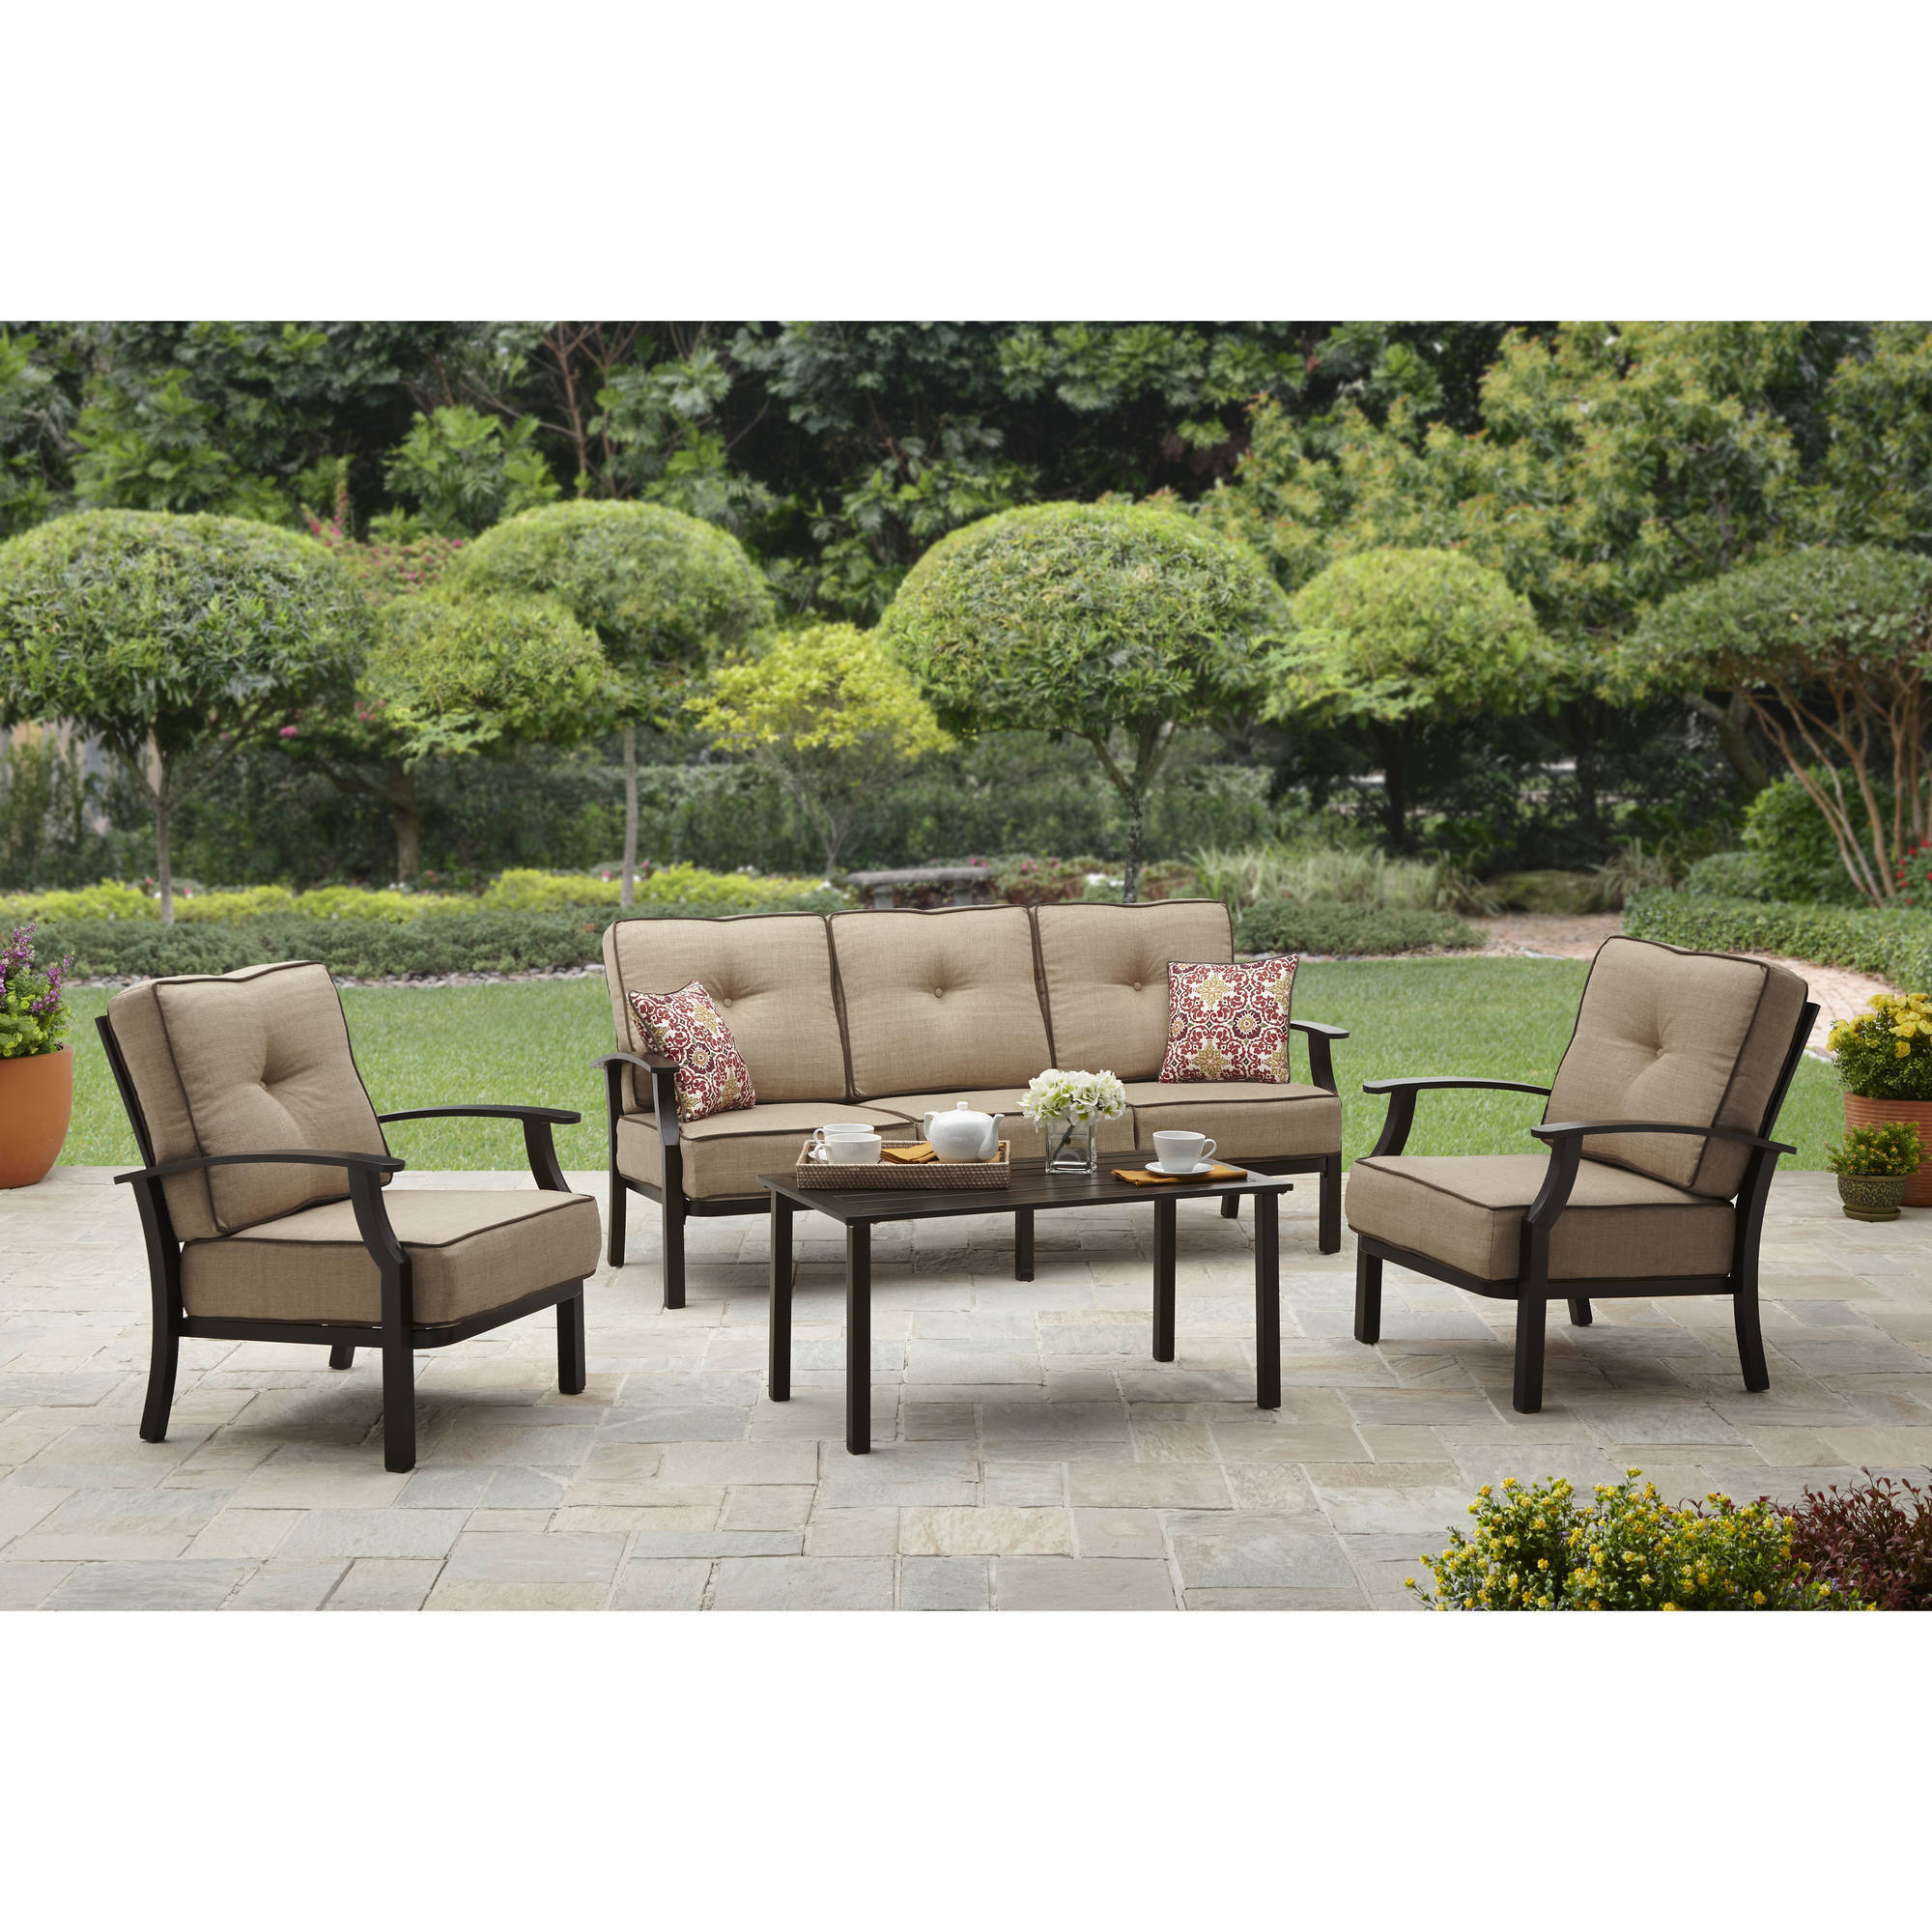 Superb Better Homes And Garden Carter Hills Outdoor Conversation Set, Seats 5